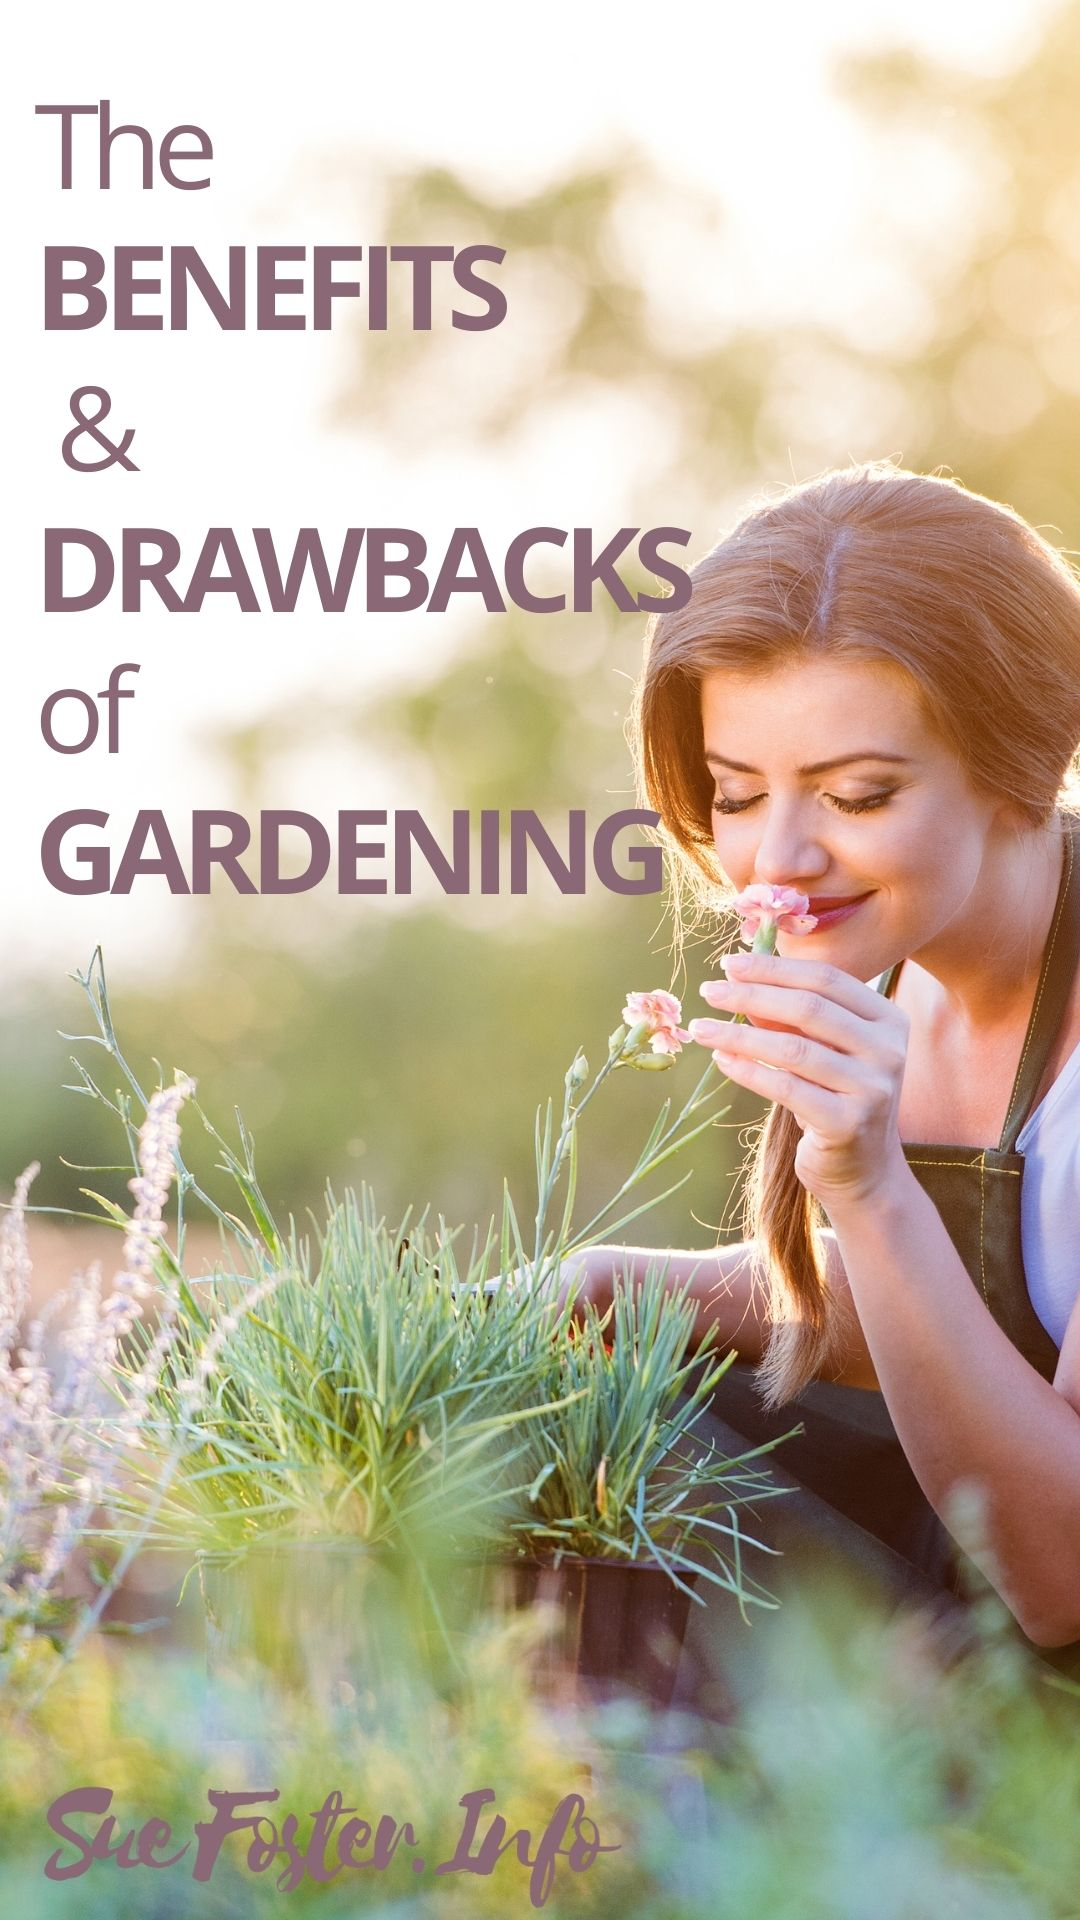 Gardening is always good on paper, but there are many things you need to think about before committing to it. Here are some considerations to remember.